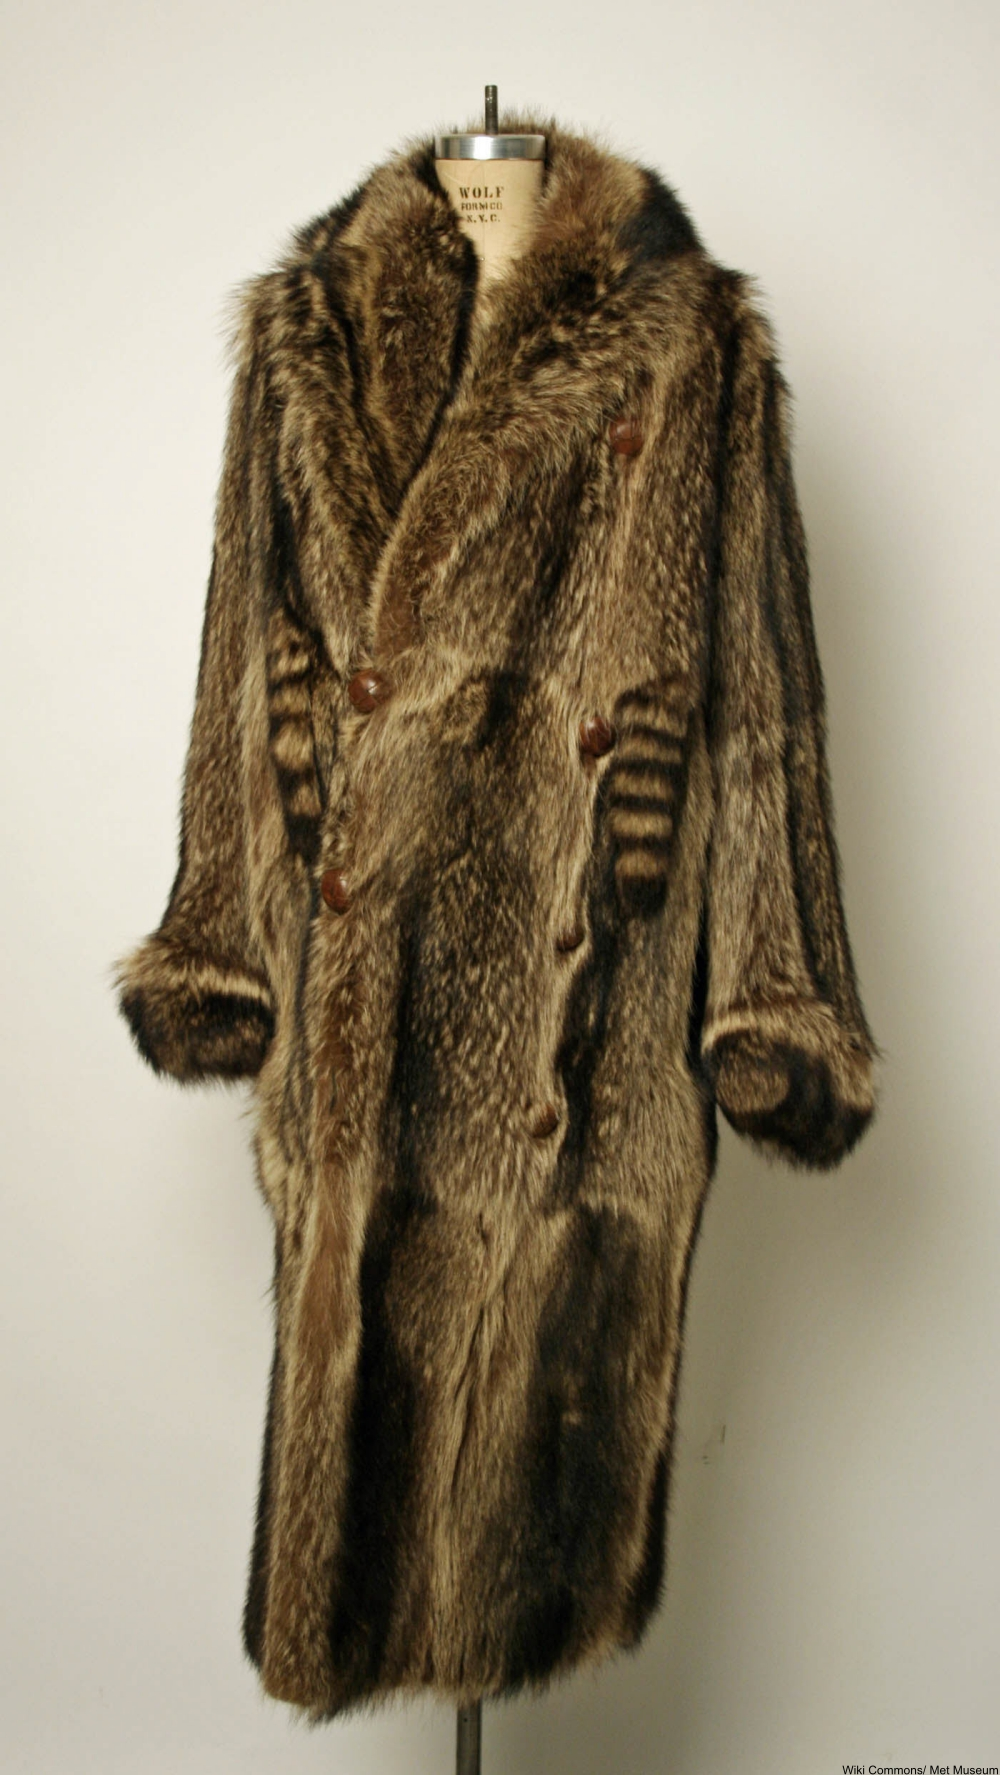 Davy Crockett Might Just Be Responsible for the Birth of Vintage Clothing as a Trend